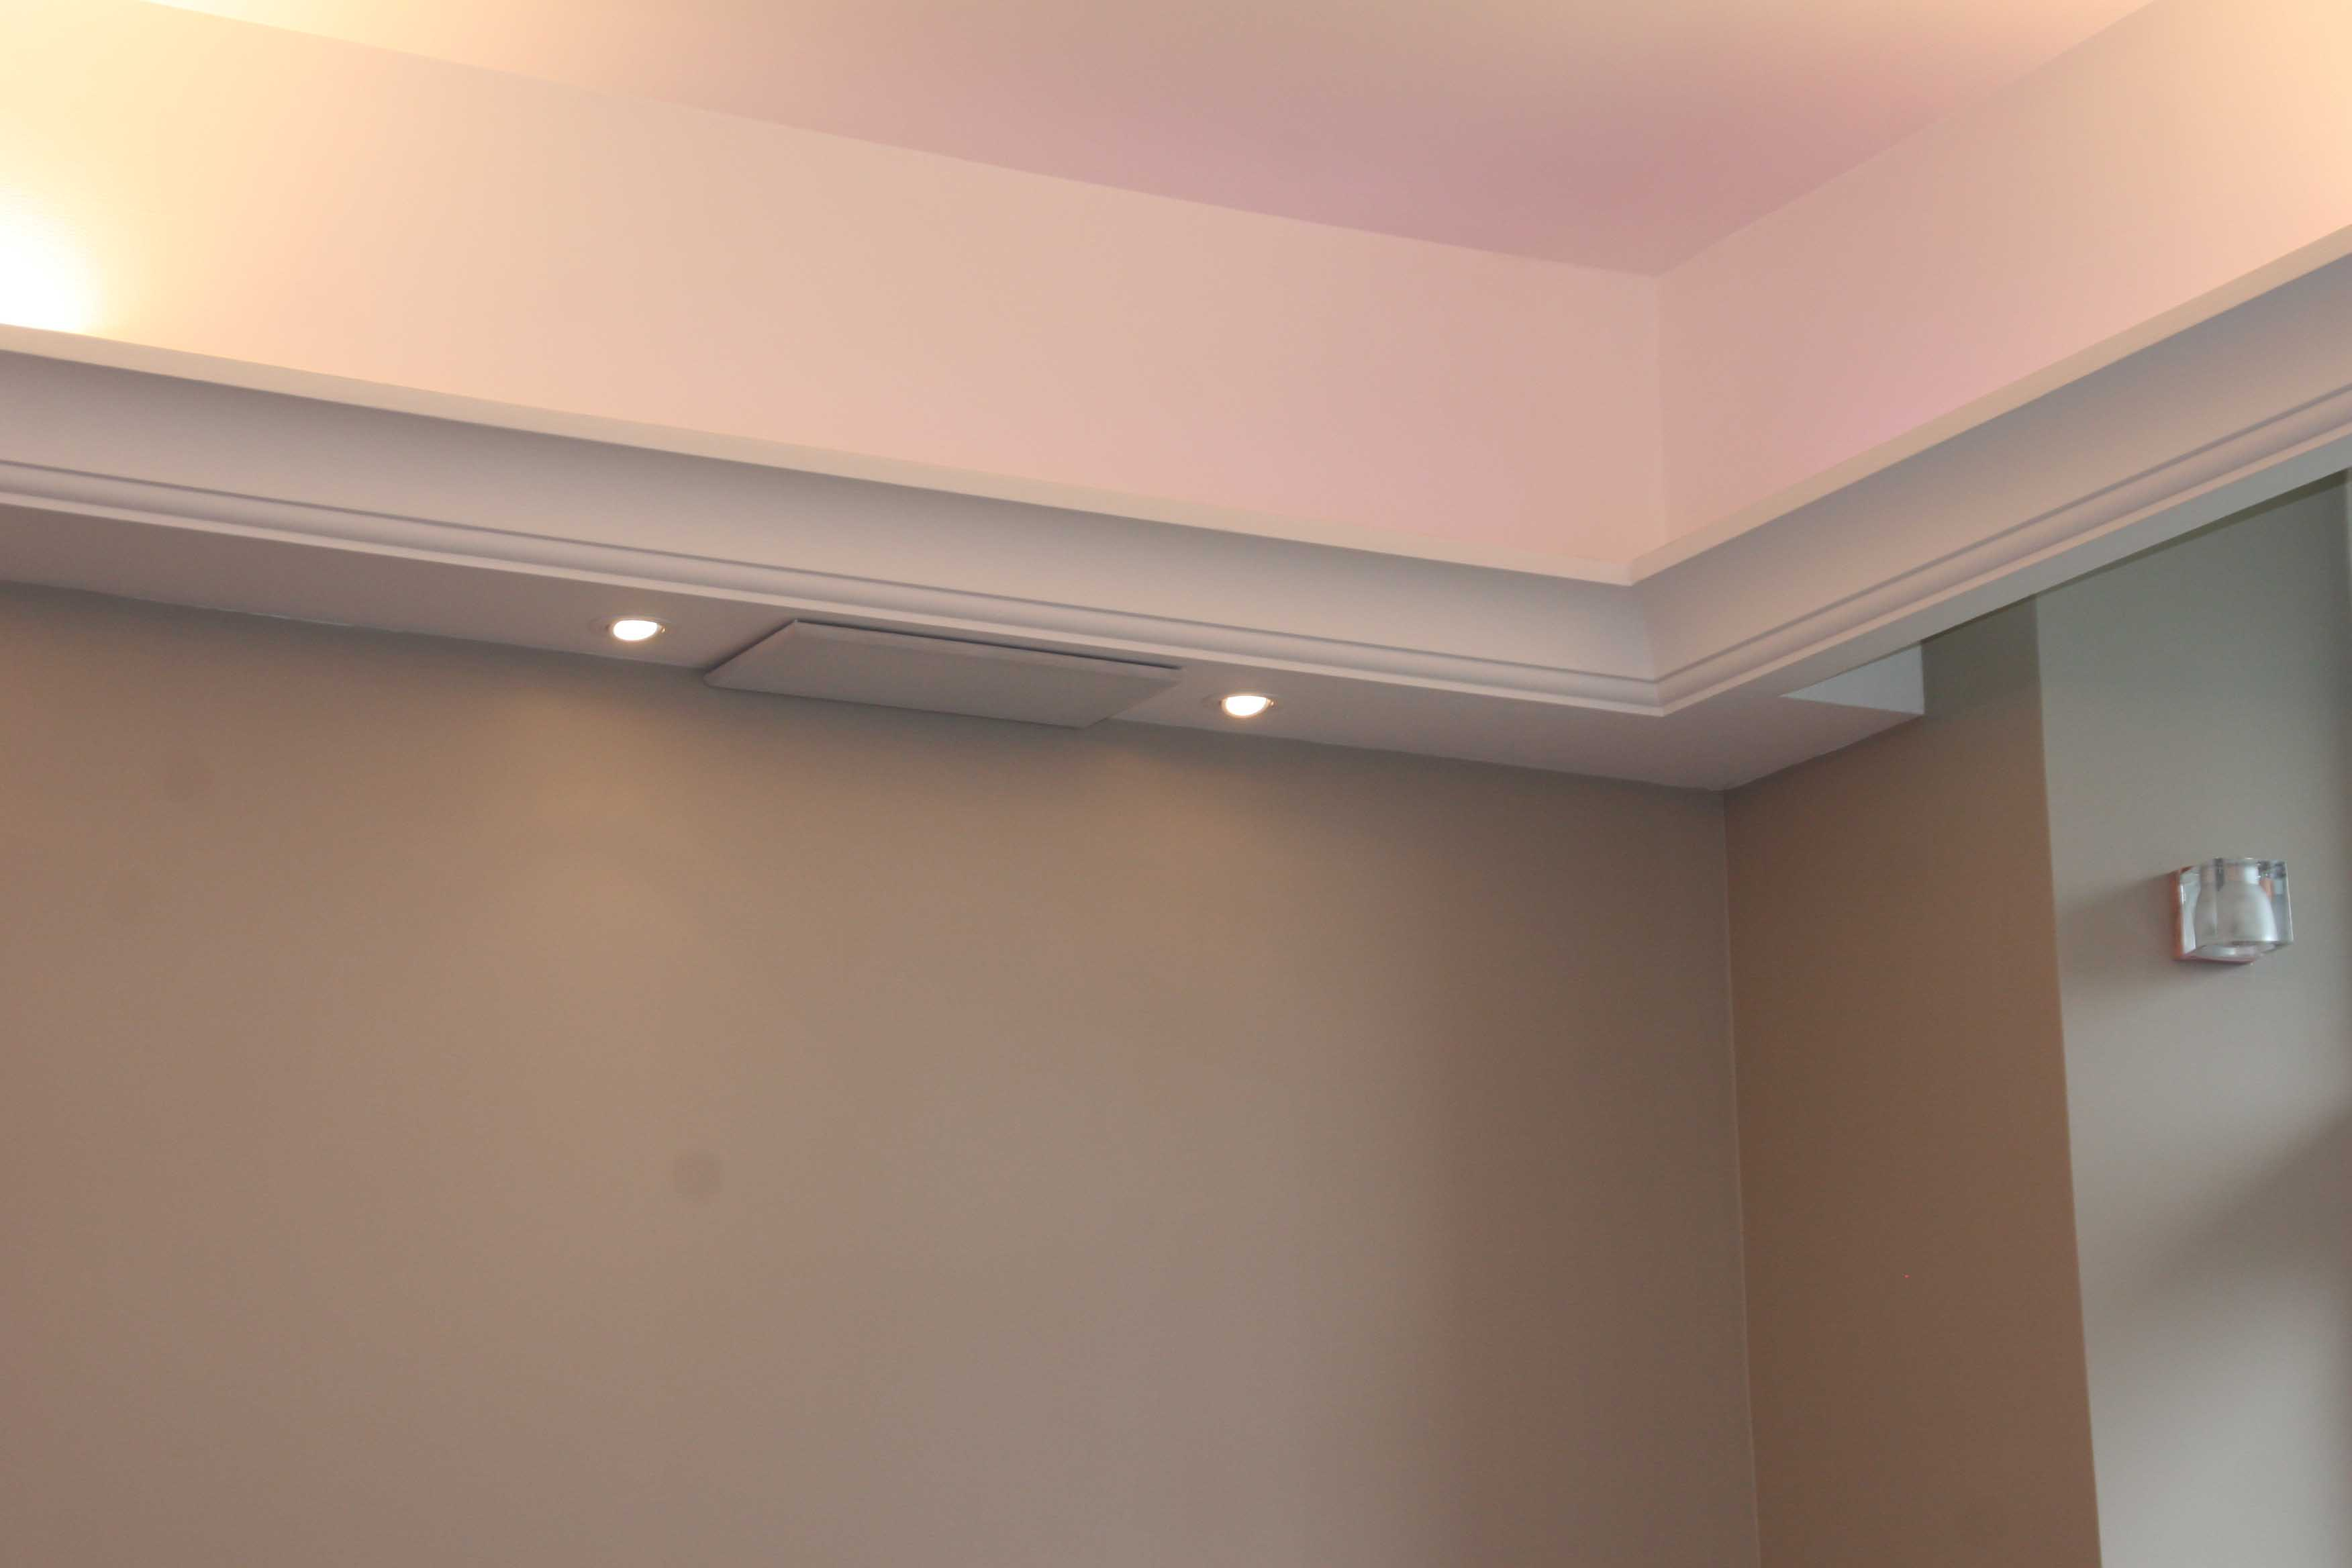 Decoration de noel plafond tourcoing estimation travaux - Dalle plafond suspendu brico depot ...